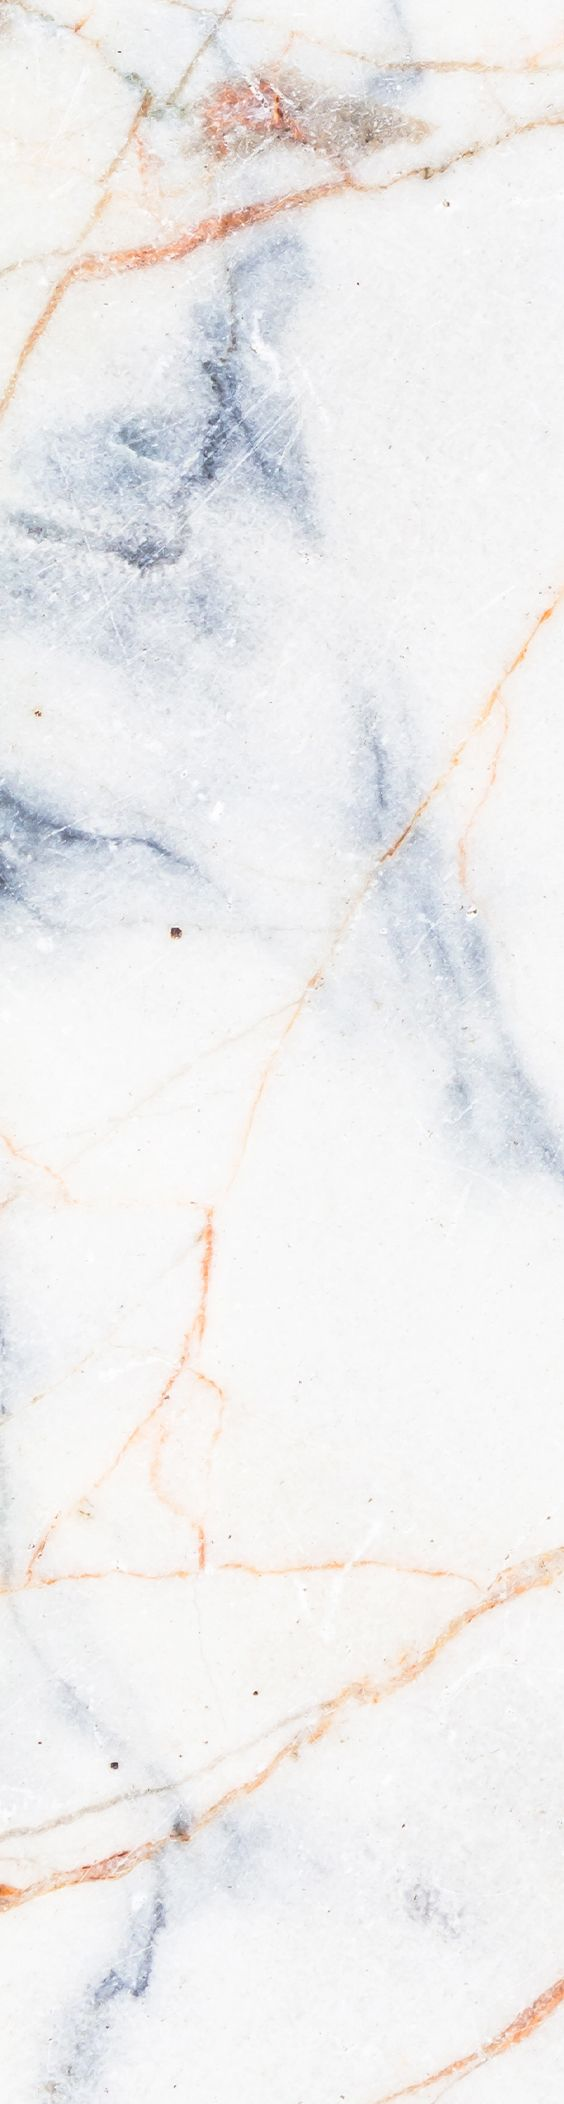 Stun your houseguests with this luxurious marble wallpaper design. With streaks of blue and bronze, it's a beautiful way to bring subtle colour into your home.